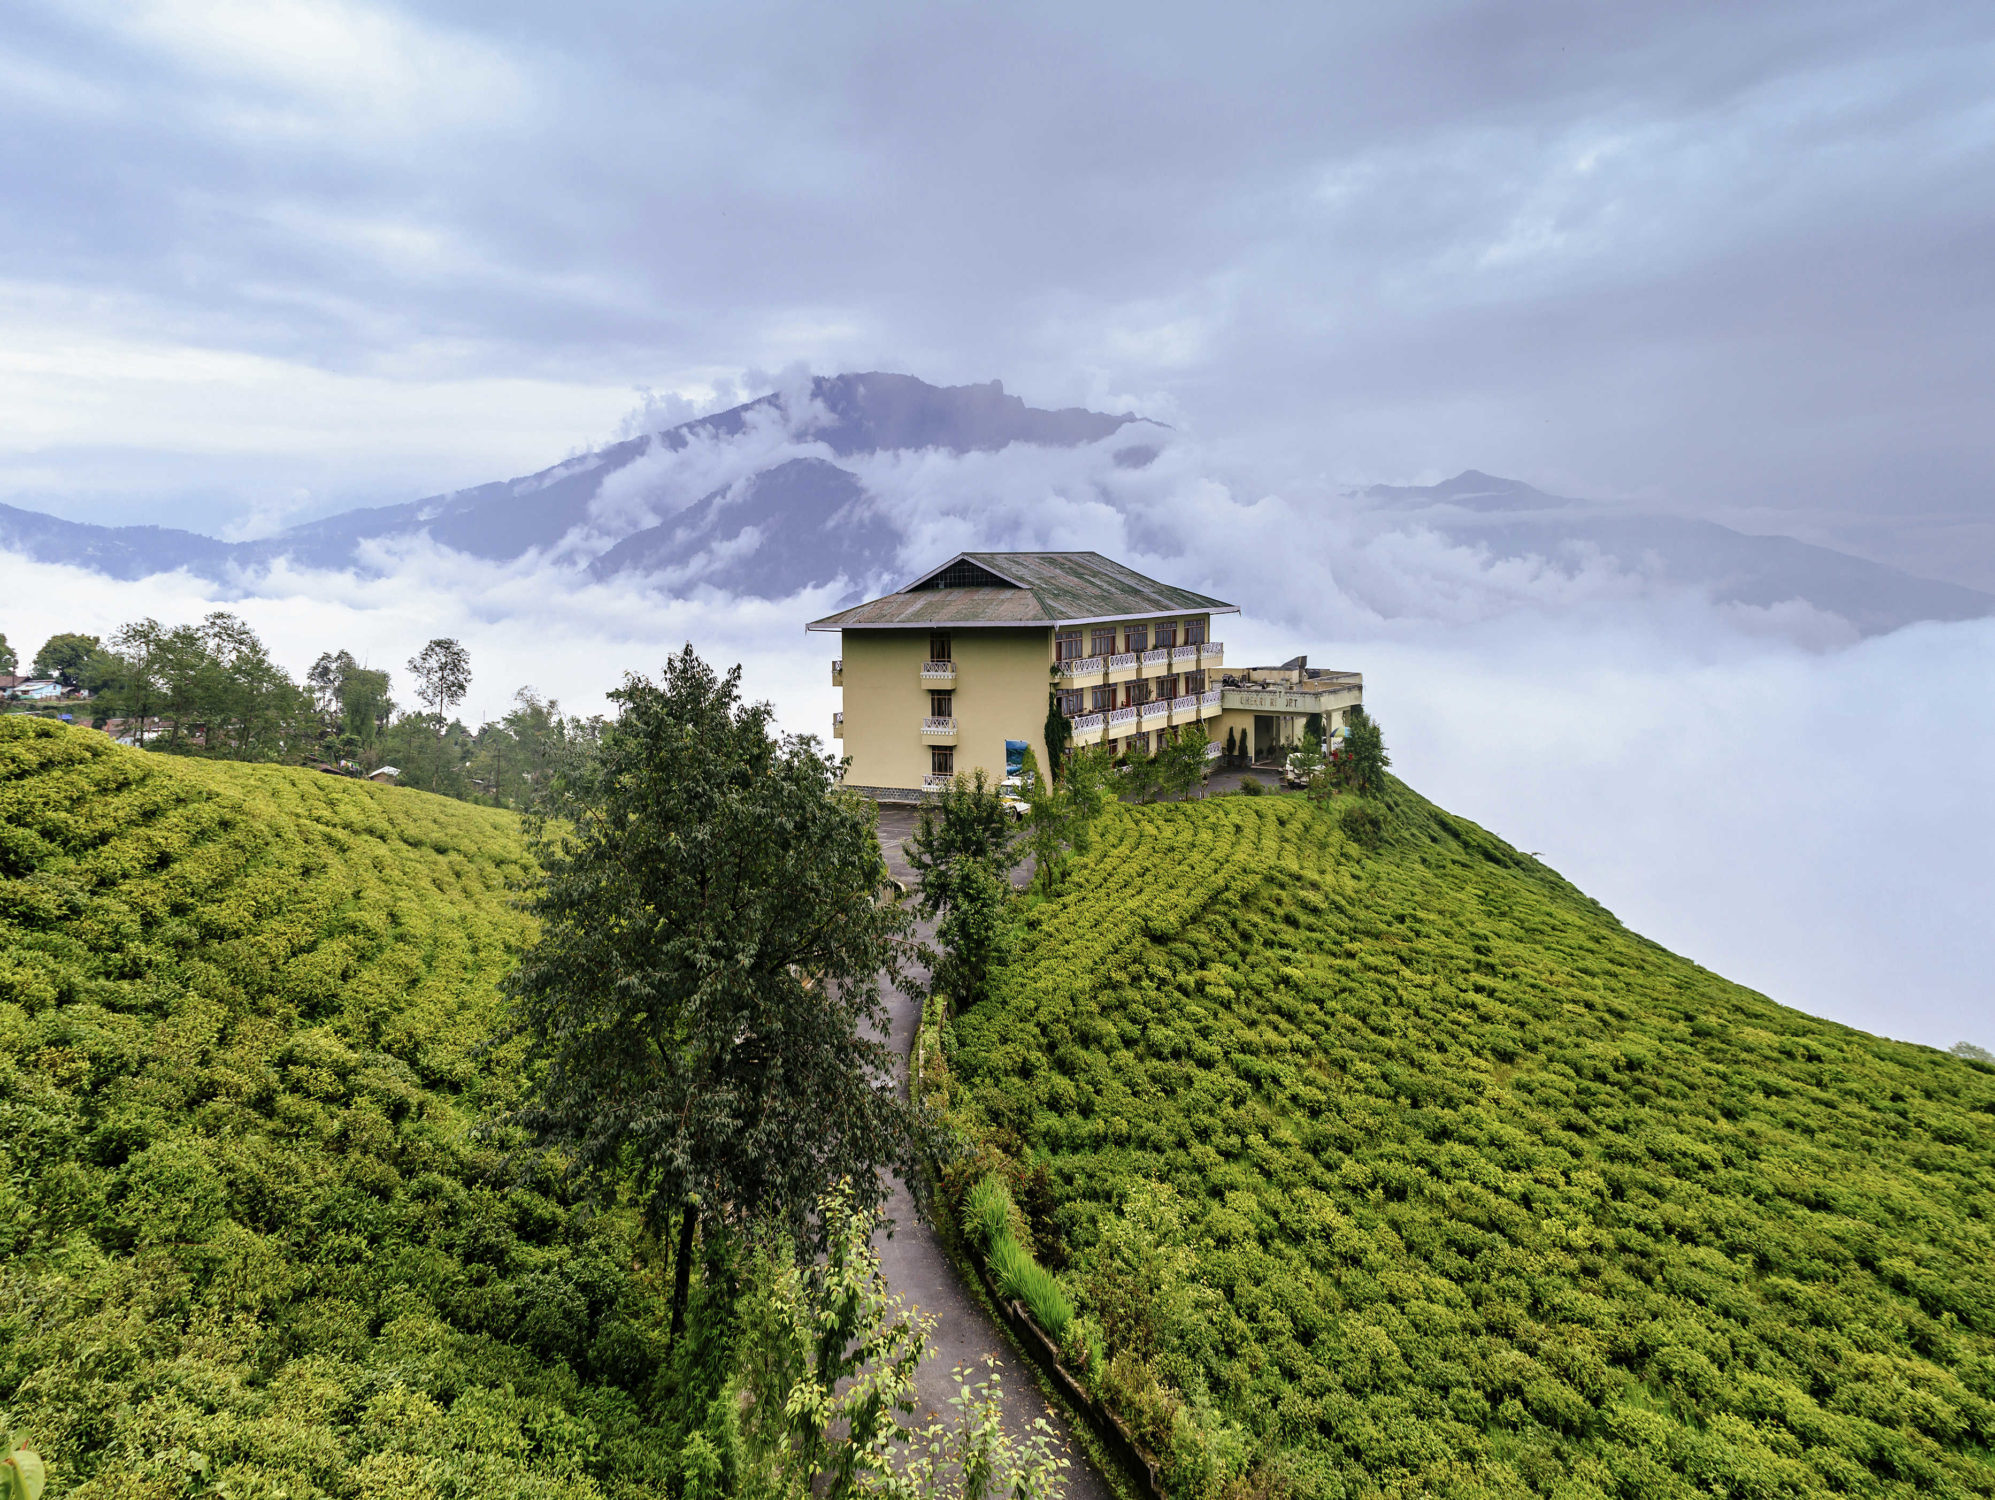 What are some quick facts about Temi Tea Gardens in Sikkim in northeast India?